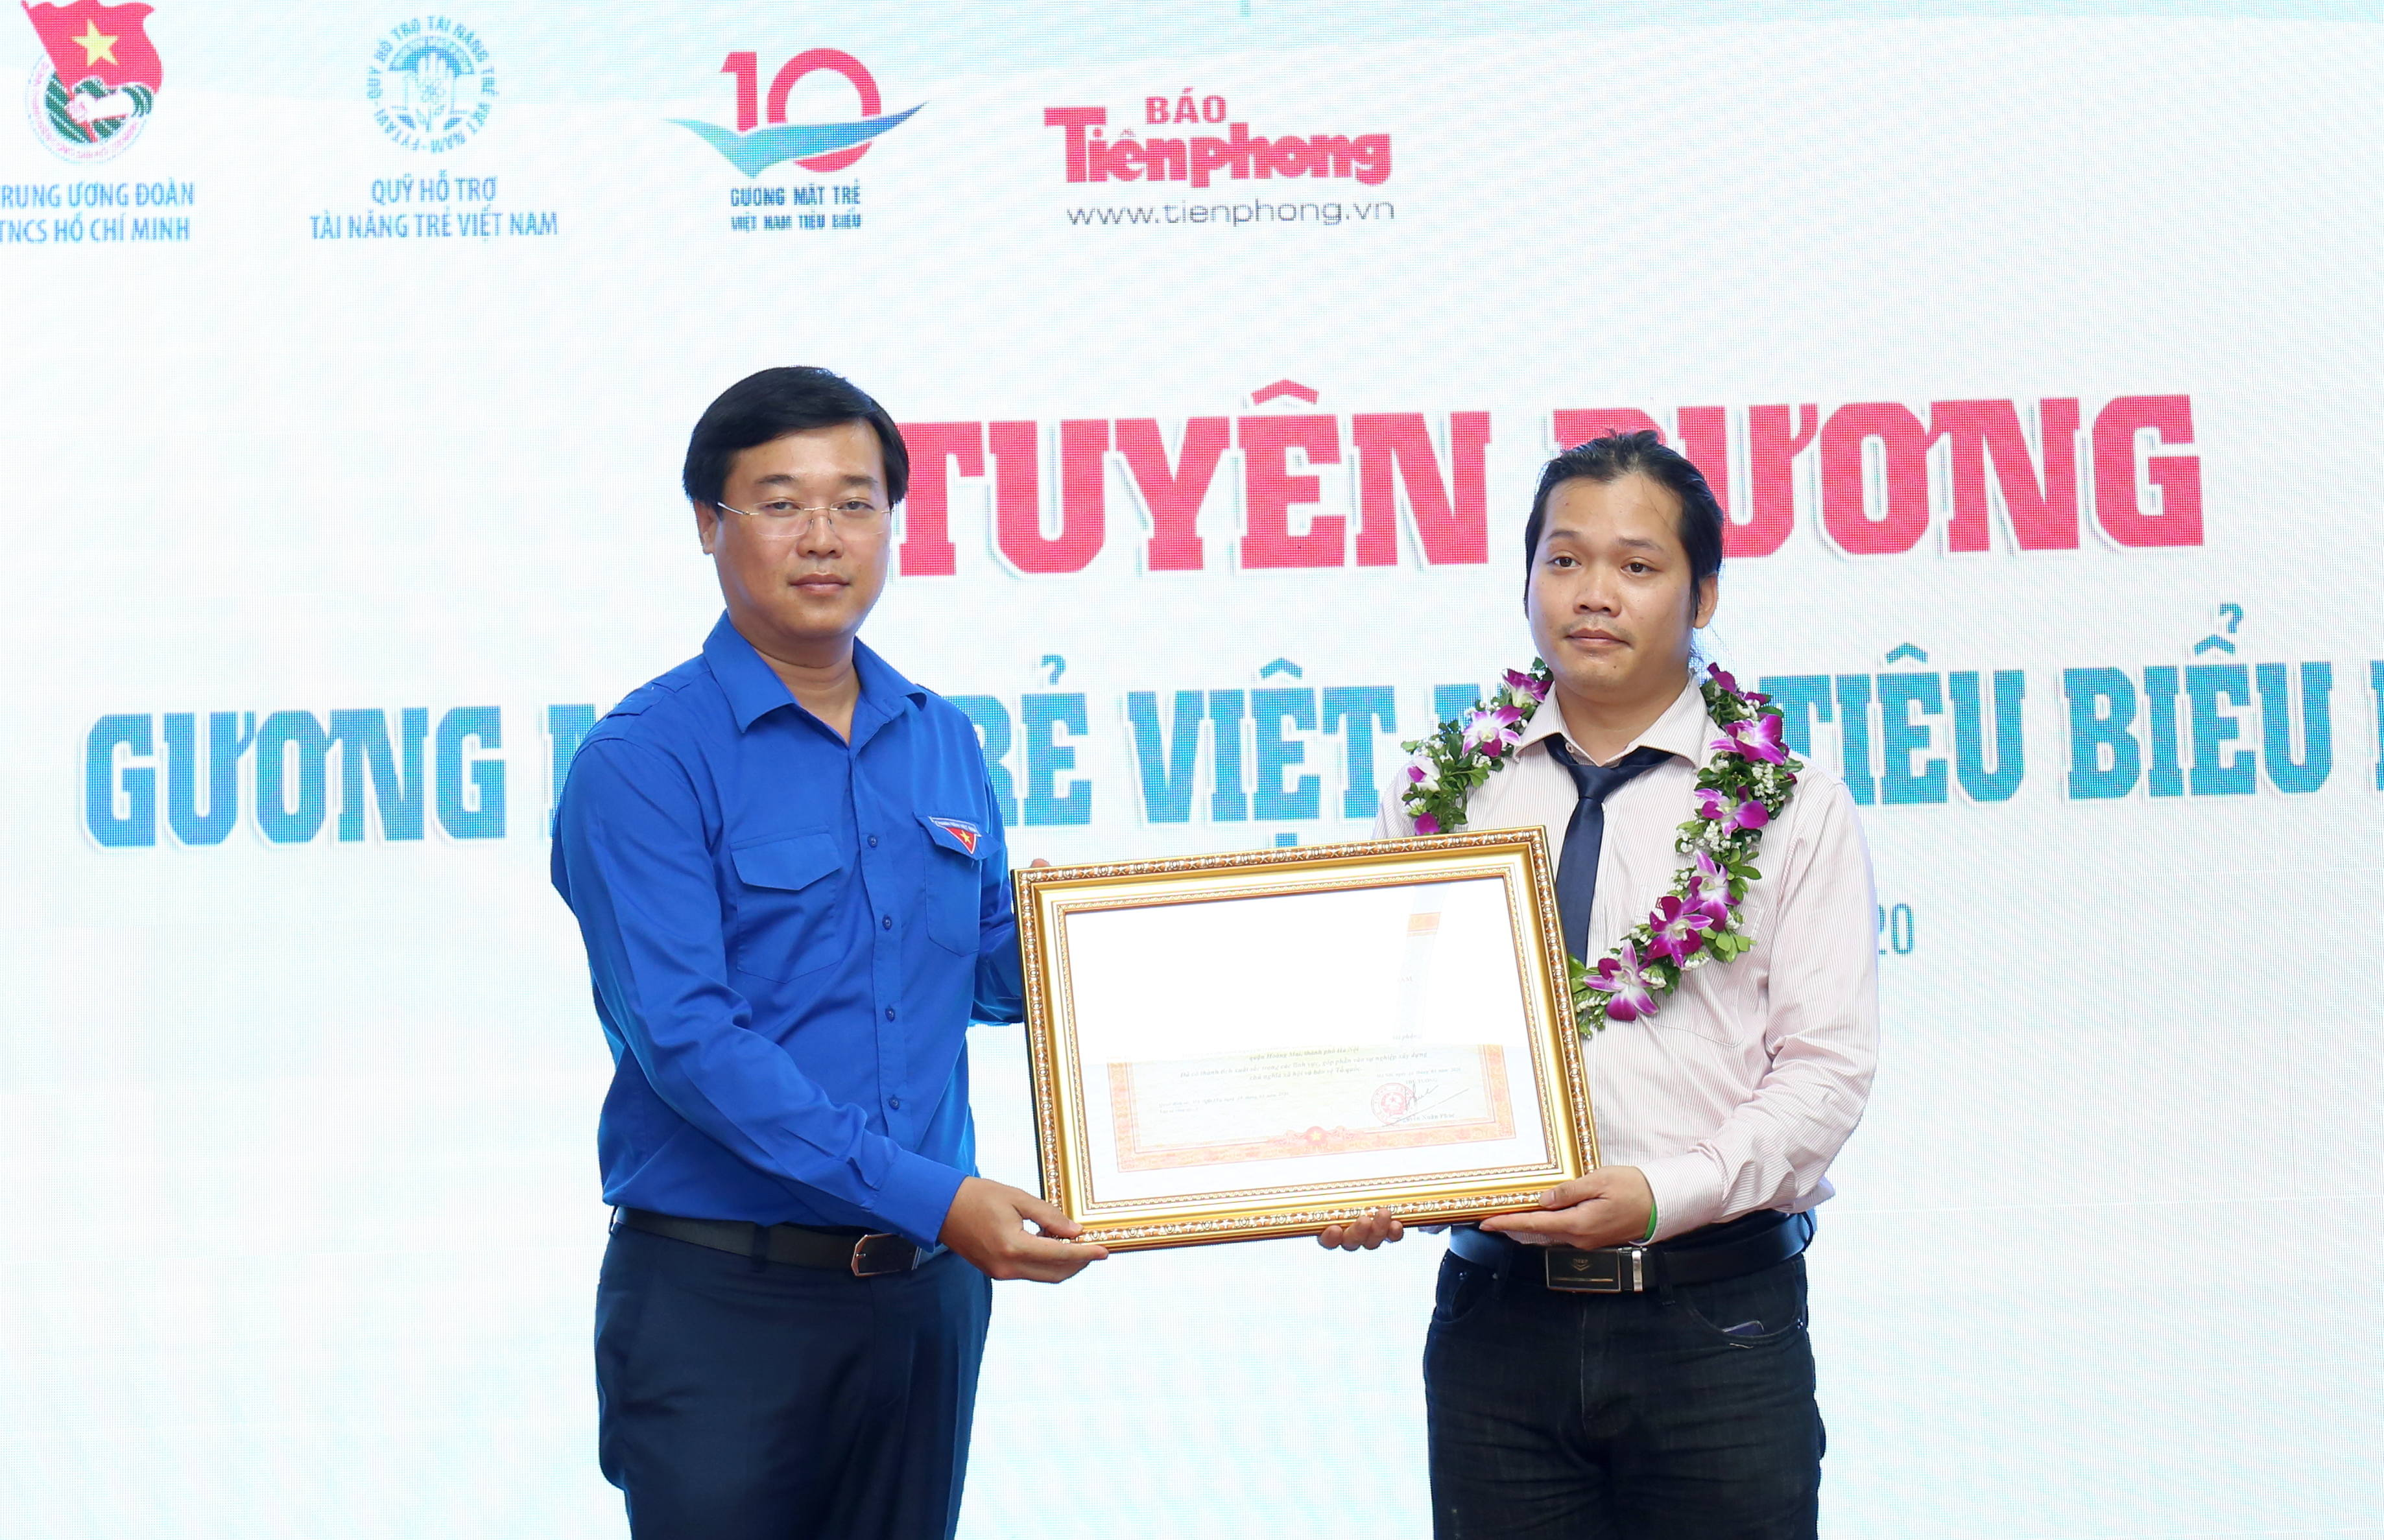 Mr. Le Quoc Phong awarding the Prime Minister's Certificate of Merit in Social activity field to Mr. Hoang Hoa Trung.